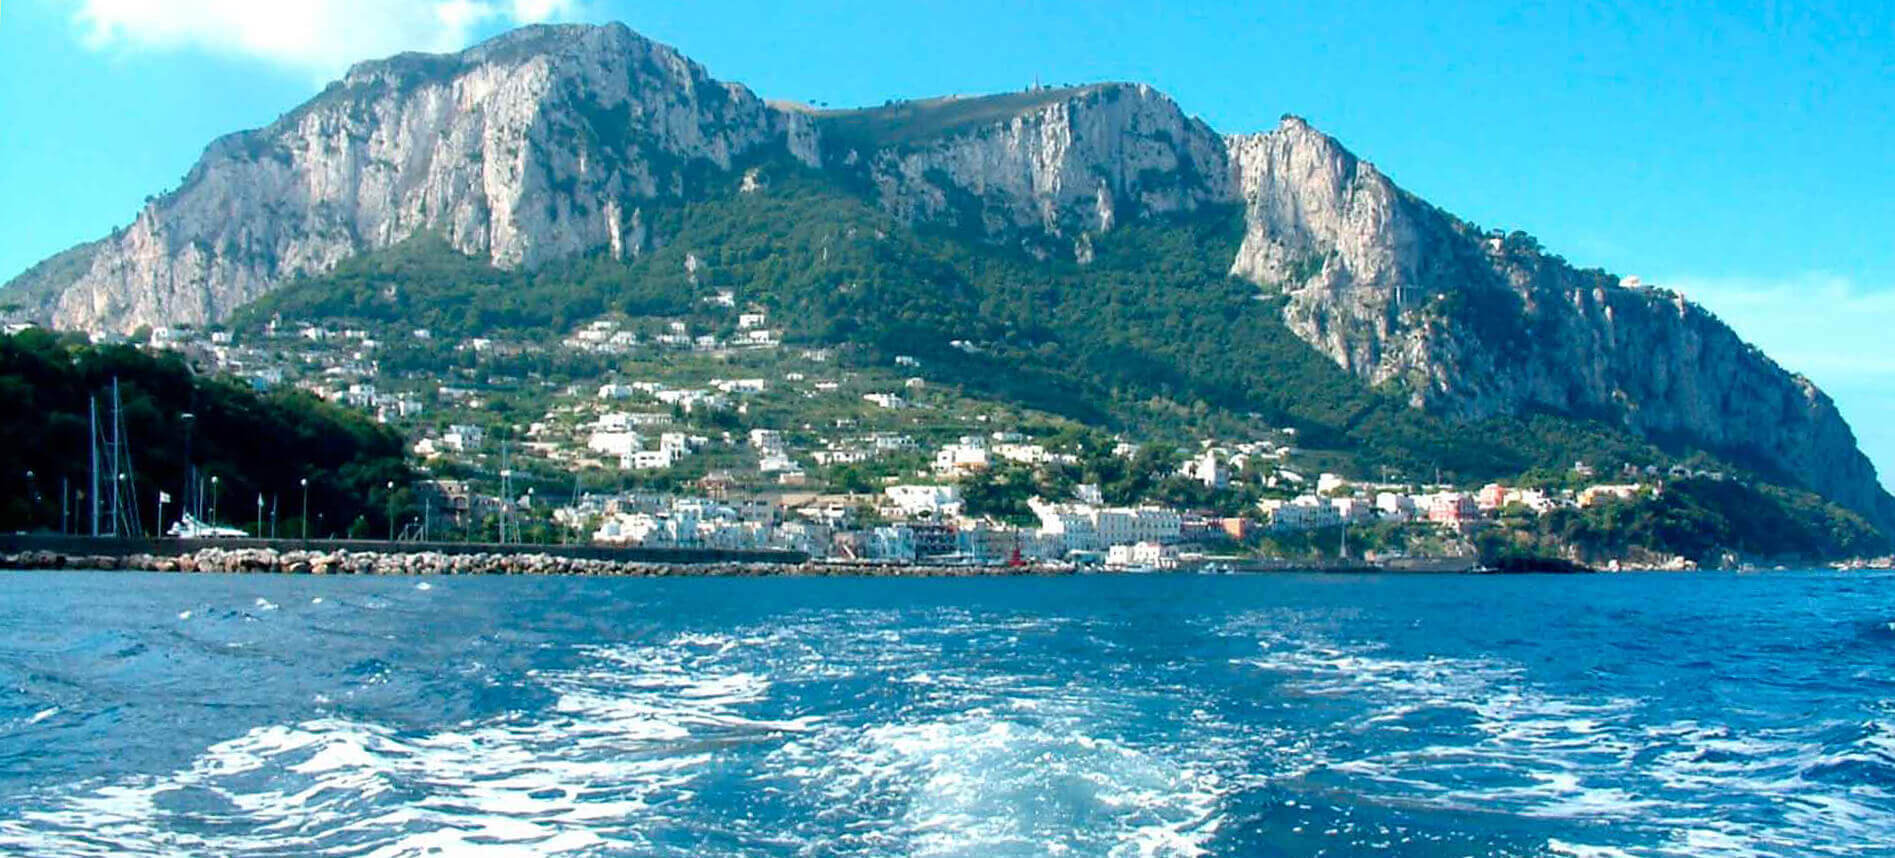 Excursions in Capri with Ischia Charter Boat